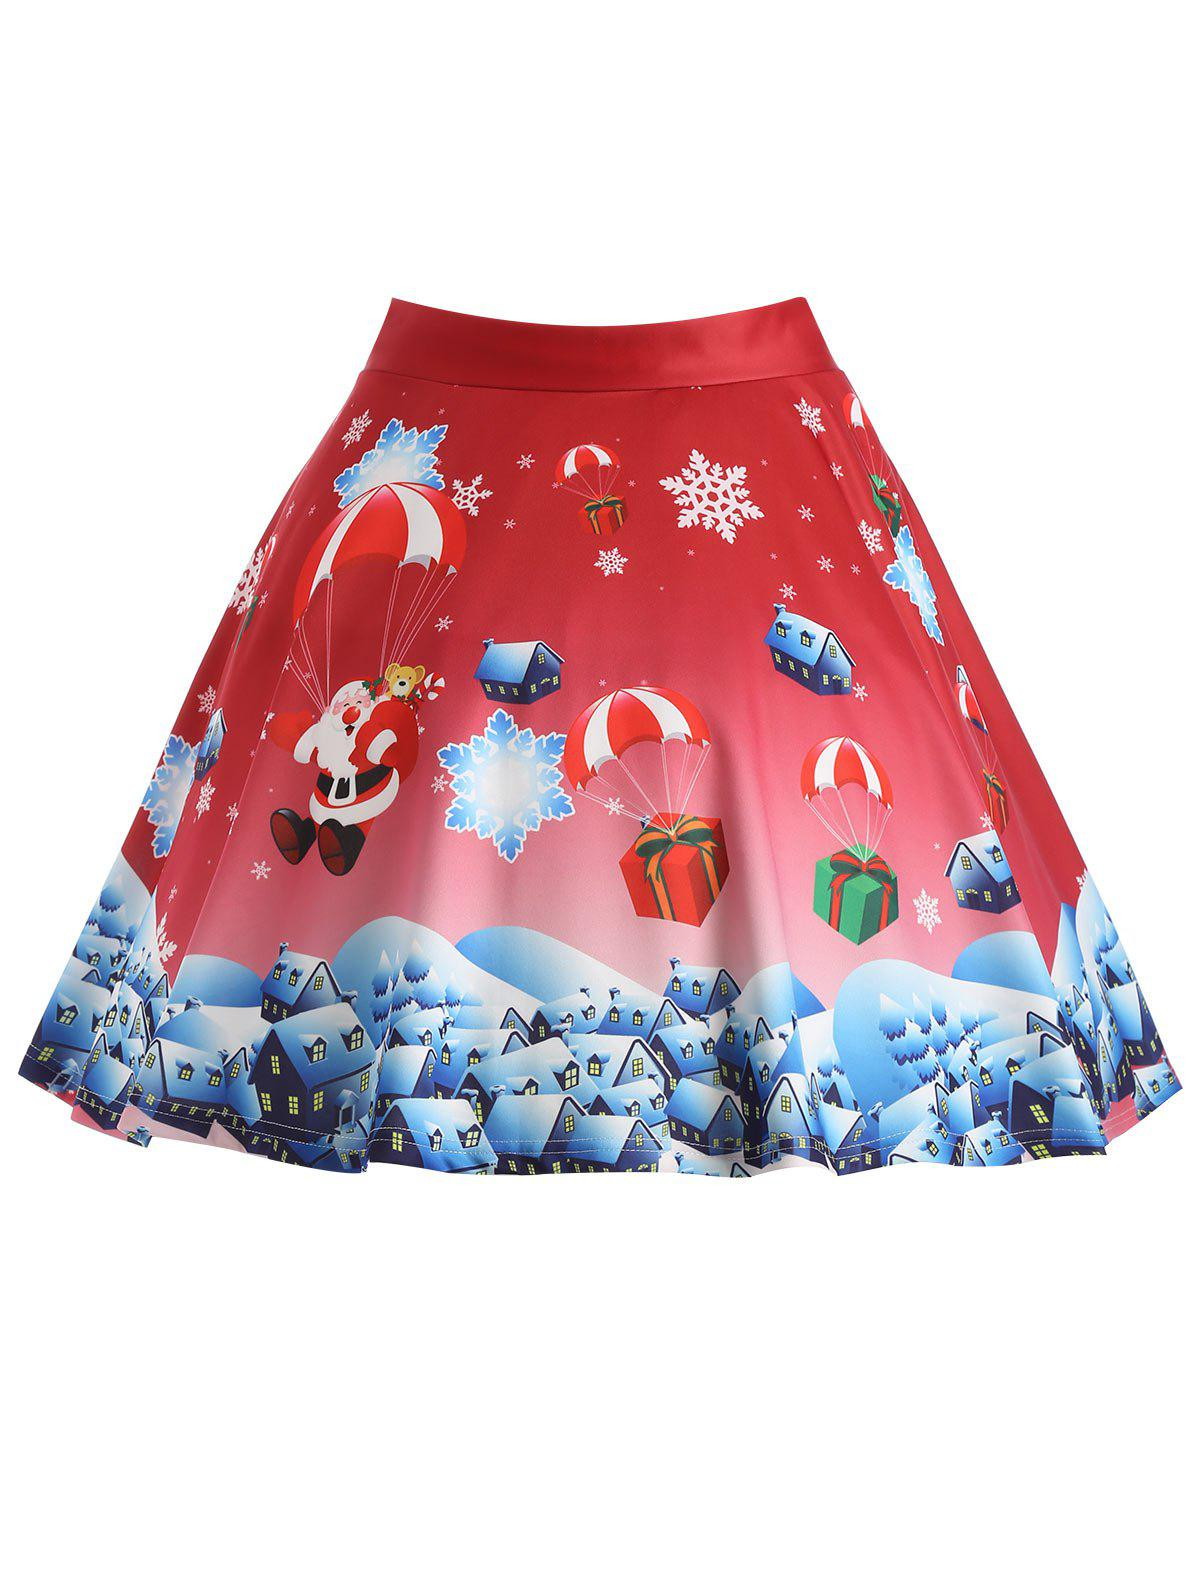 Plus Size Christmas Gift Santa Claus Print SkirtWOMEN<br><br>Size: 3XL; Color: RED; Material: Polyester; Length: Knee-Length; Silhouette: A-Line; Pattern Type: Print; Season: Winter; With Belt: No; Weight: 0.3750kg; Package Contents: 1 x Skirt;